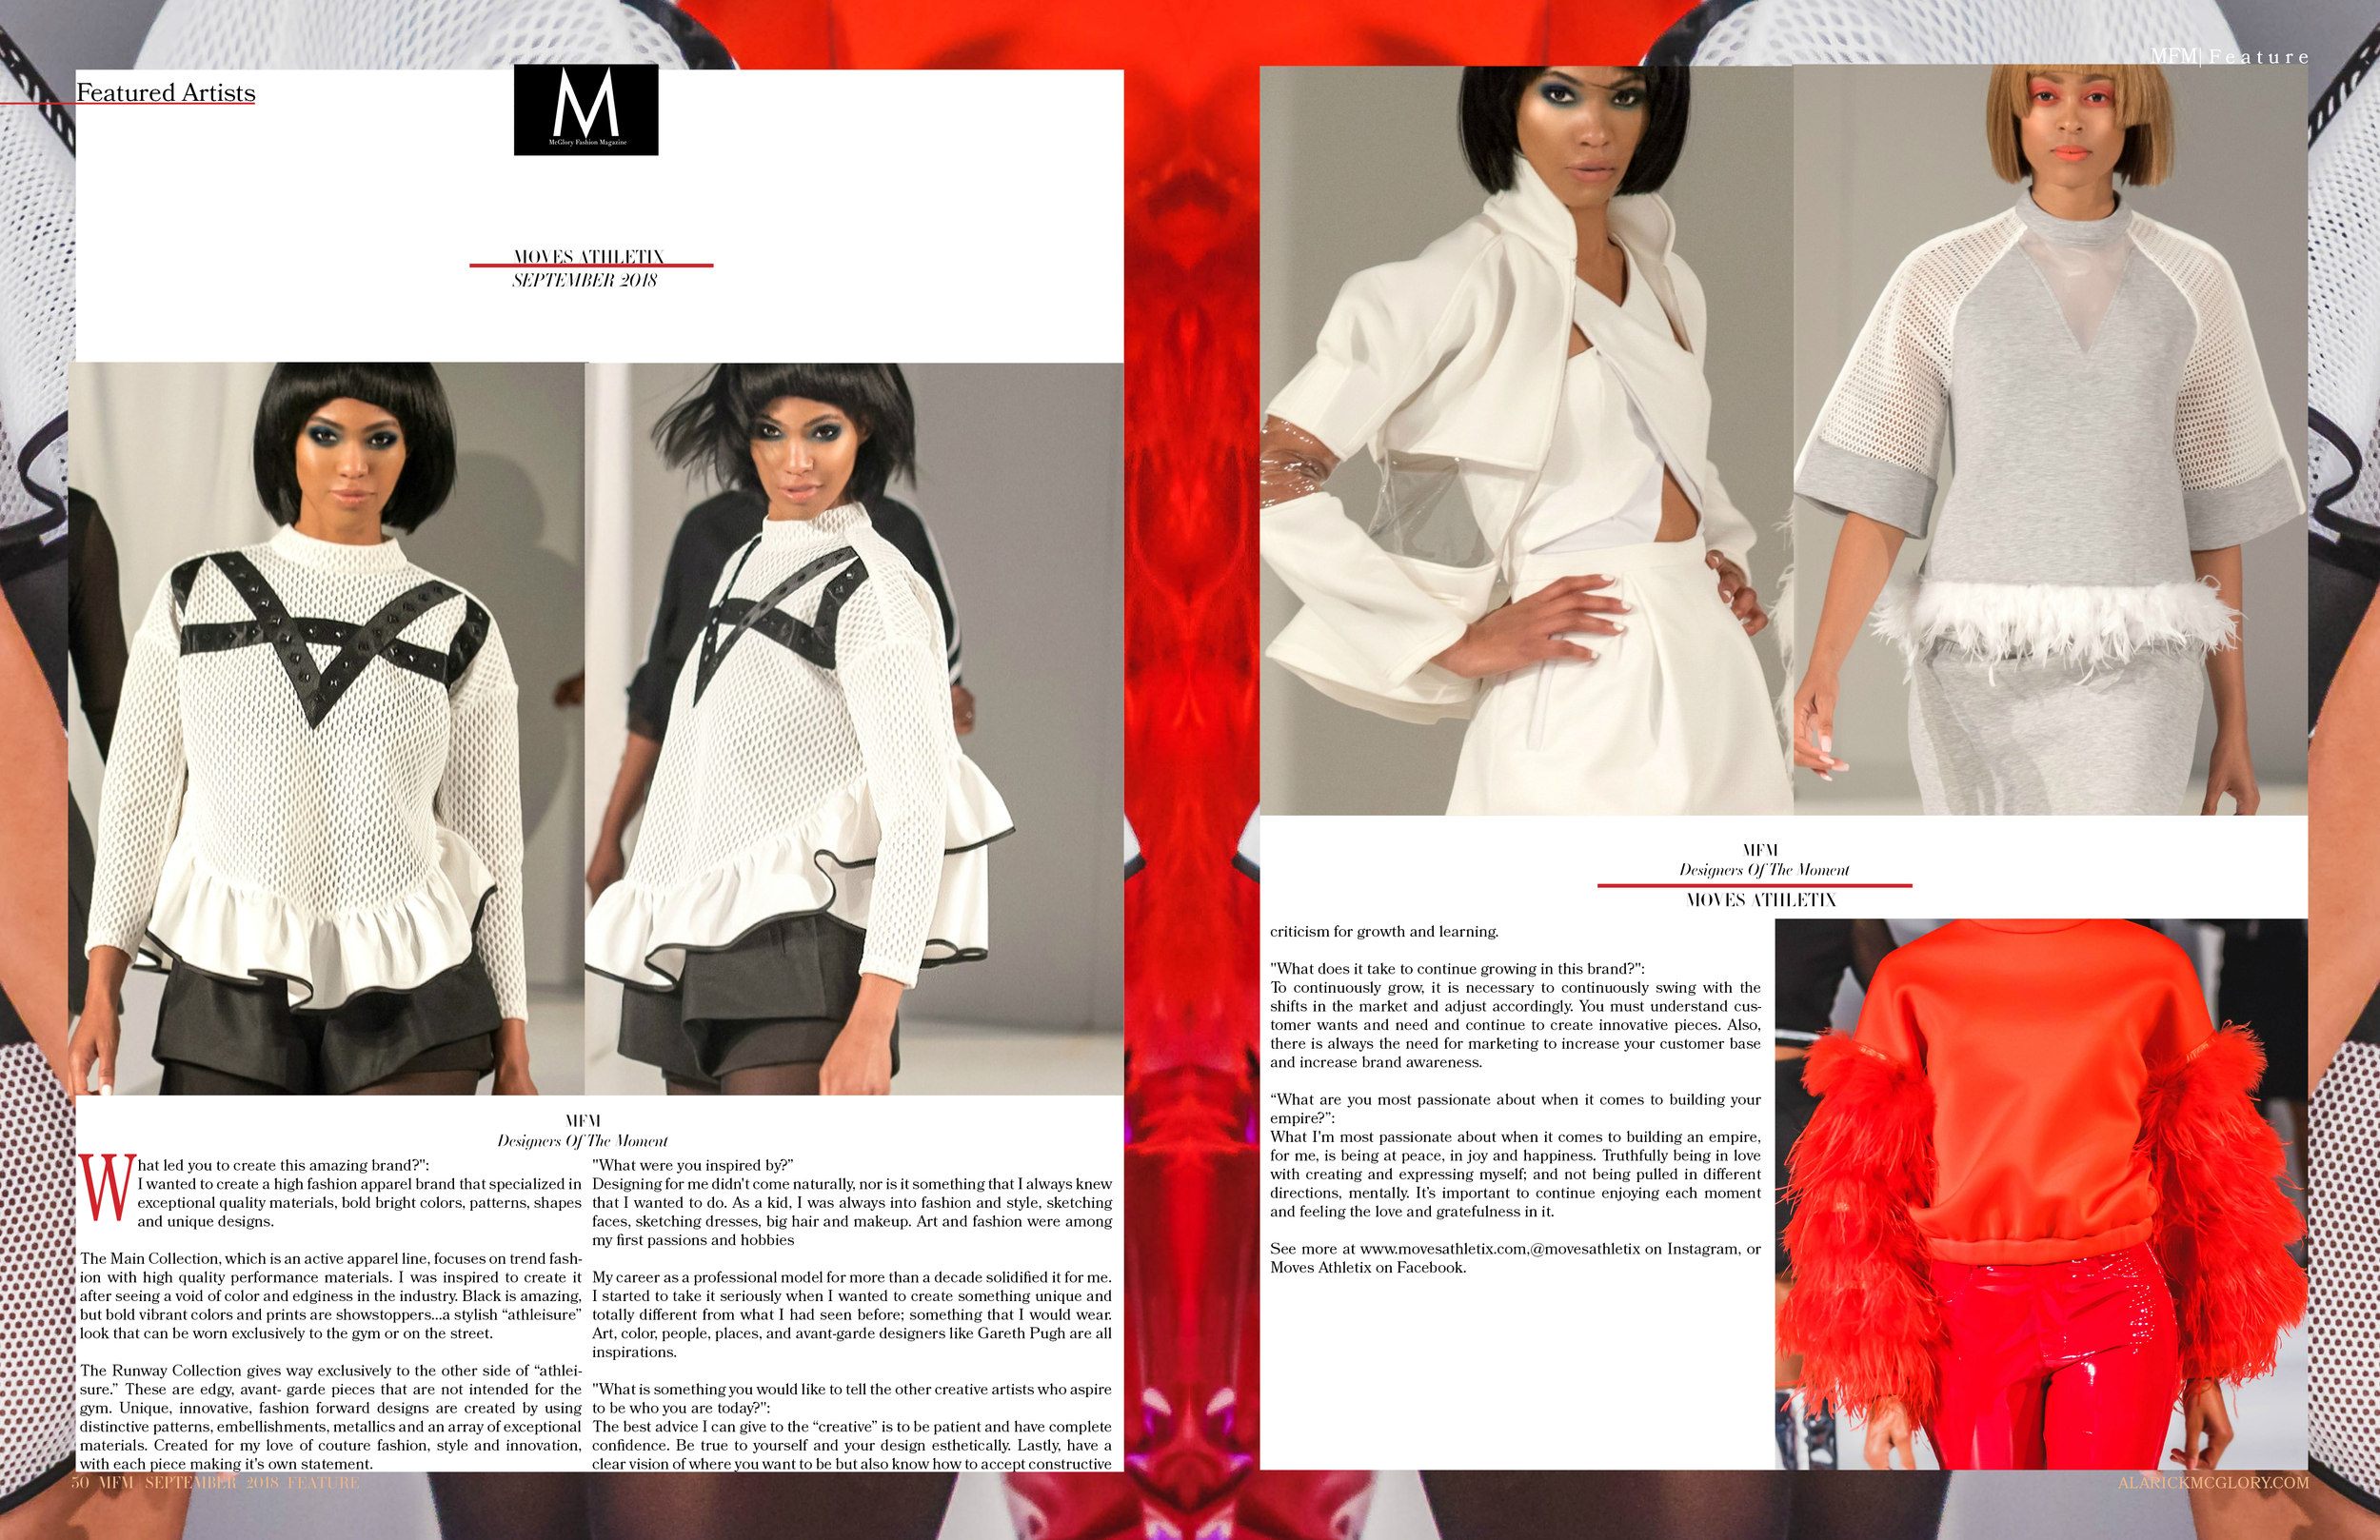 MFM first issue 6-edited 106 Part 1 space 1-1-1-1 PDF VOL 1 NEW NEW print16.png